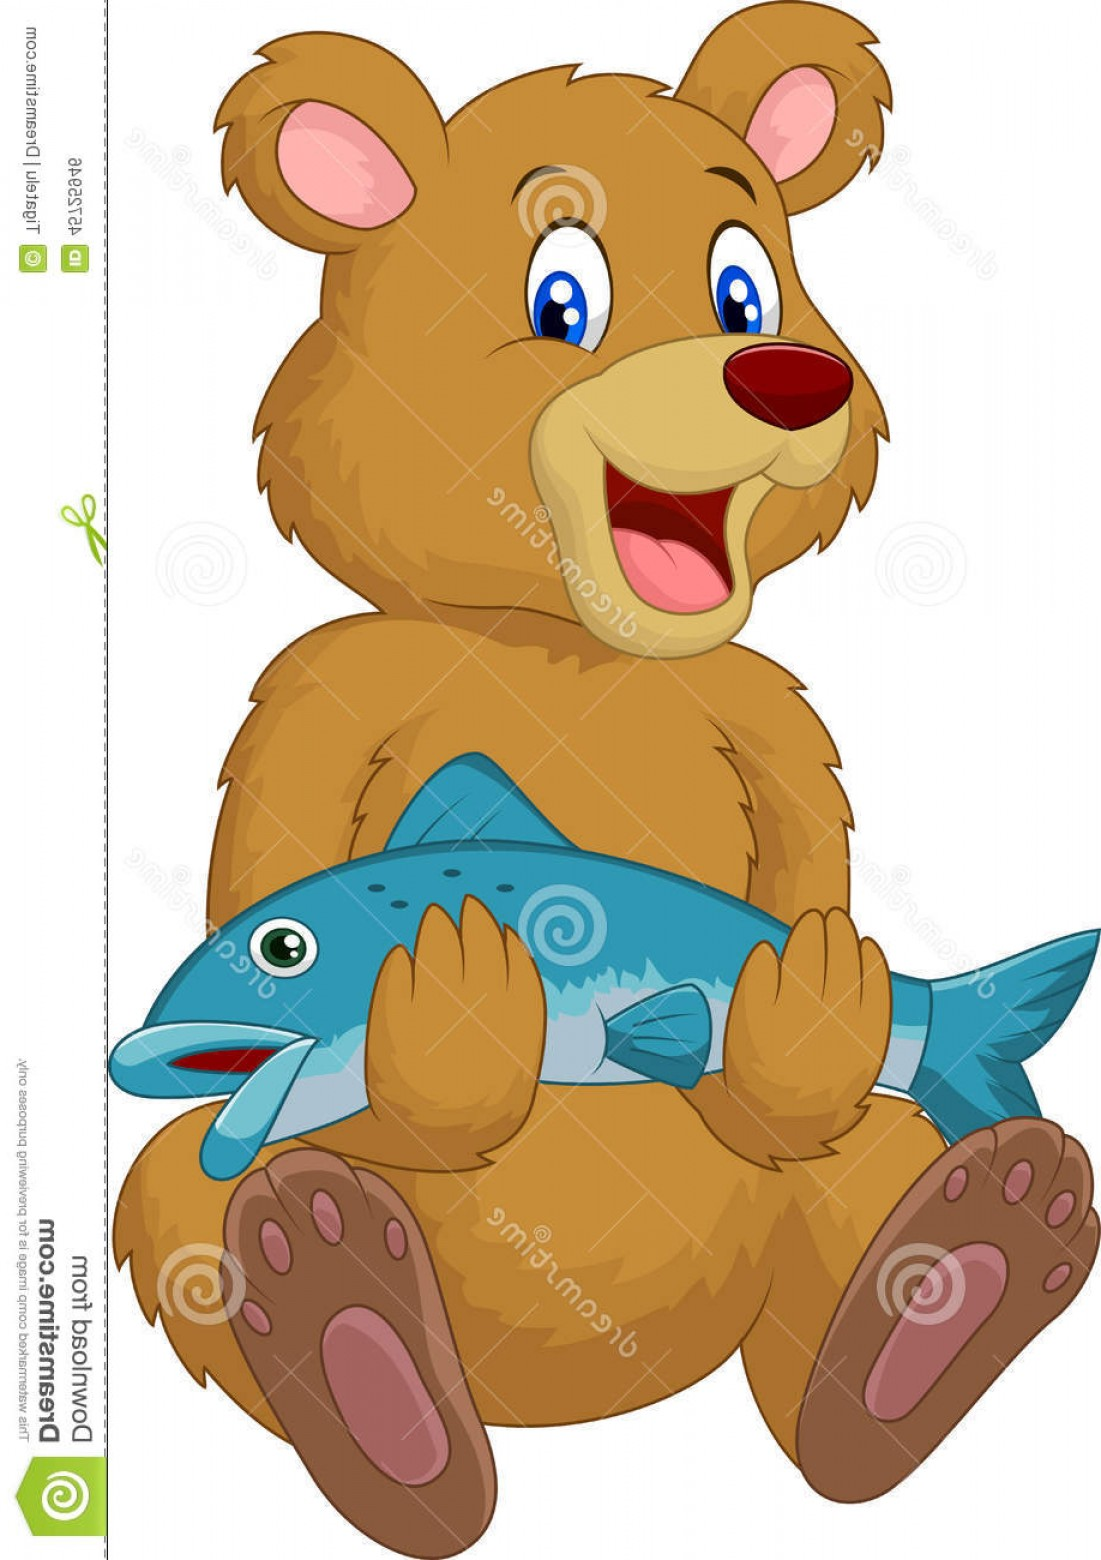 Vector Art Bear With Salmon: Stock Illustration Cute Bear Holding Salmon Fish Illustration Image